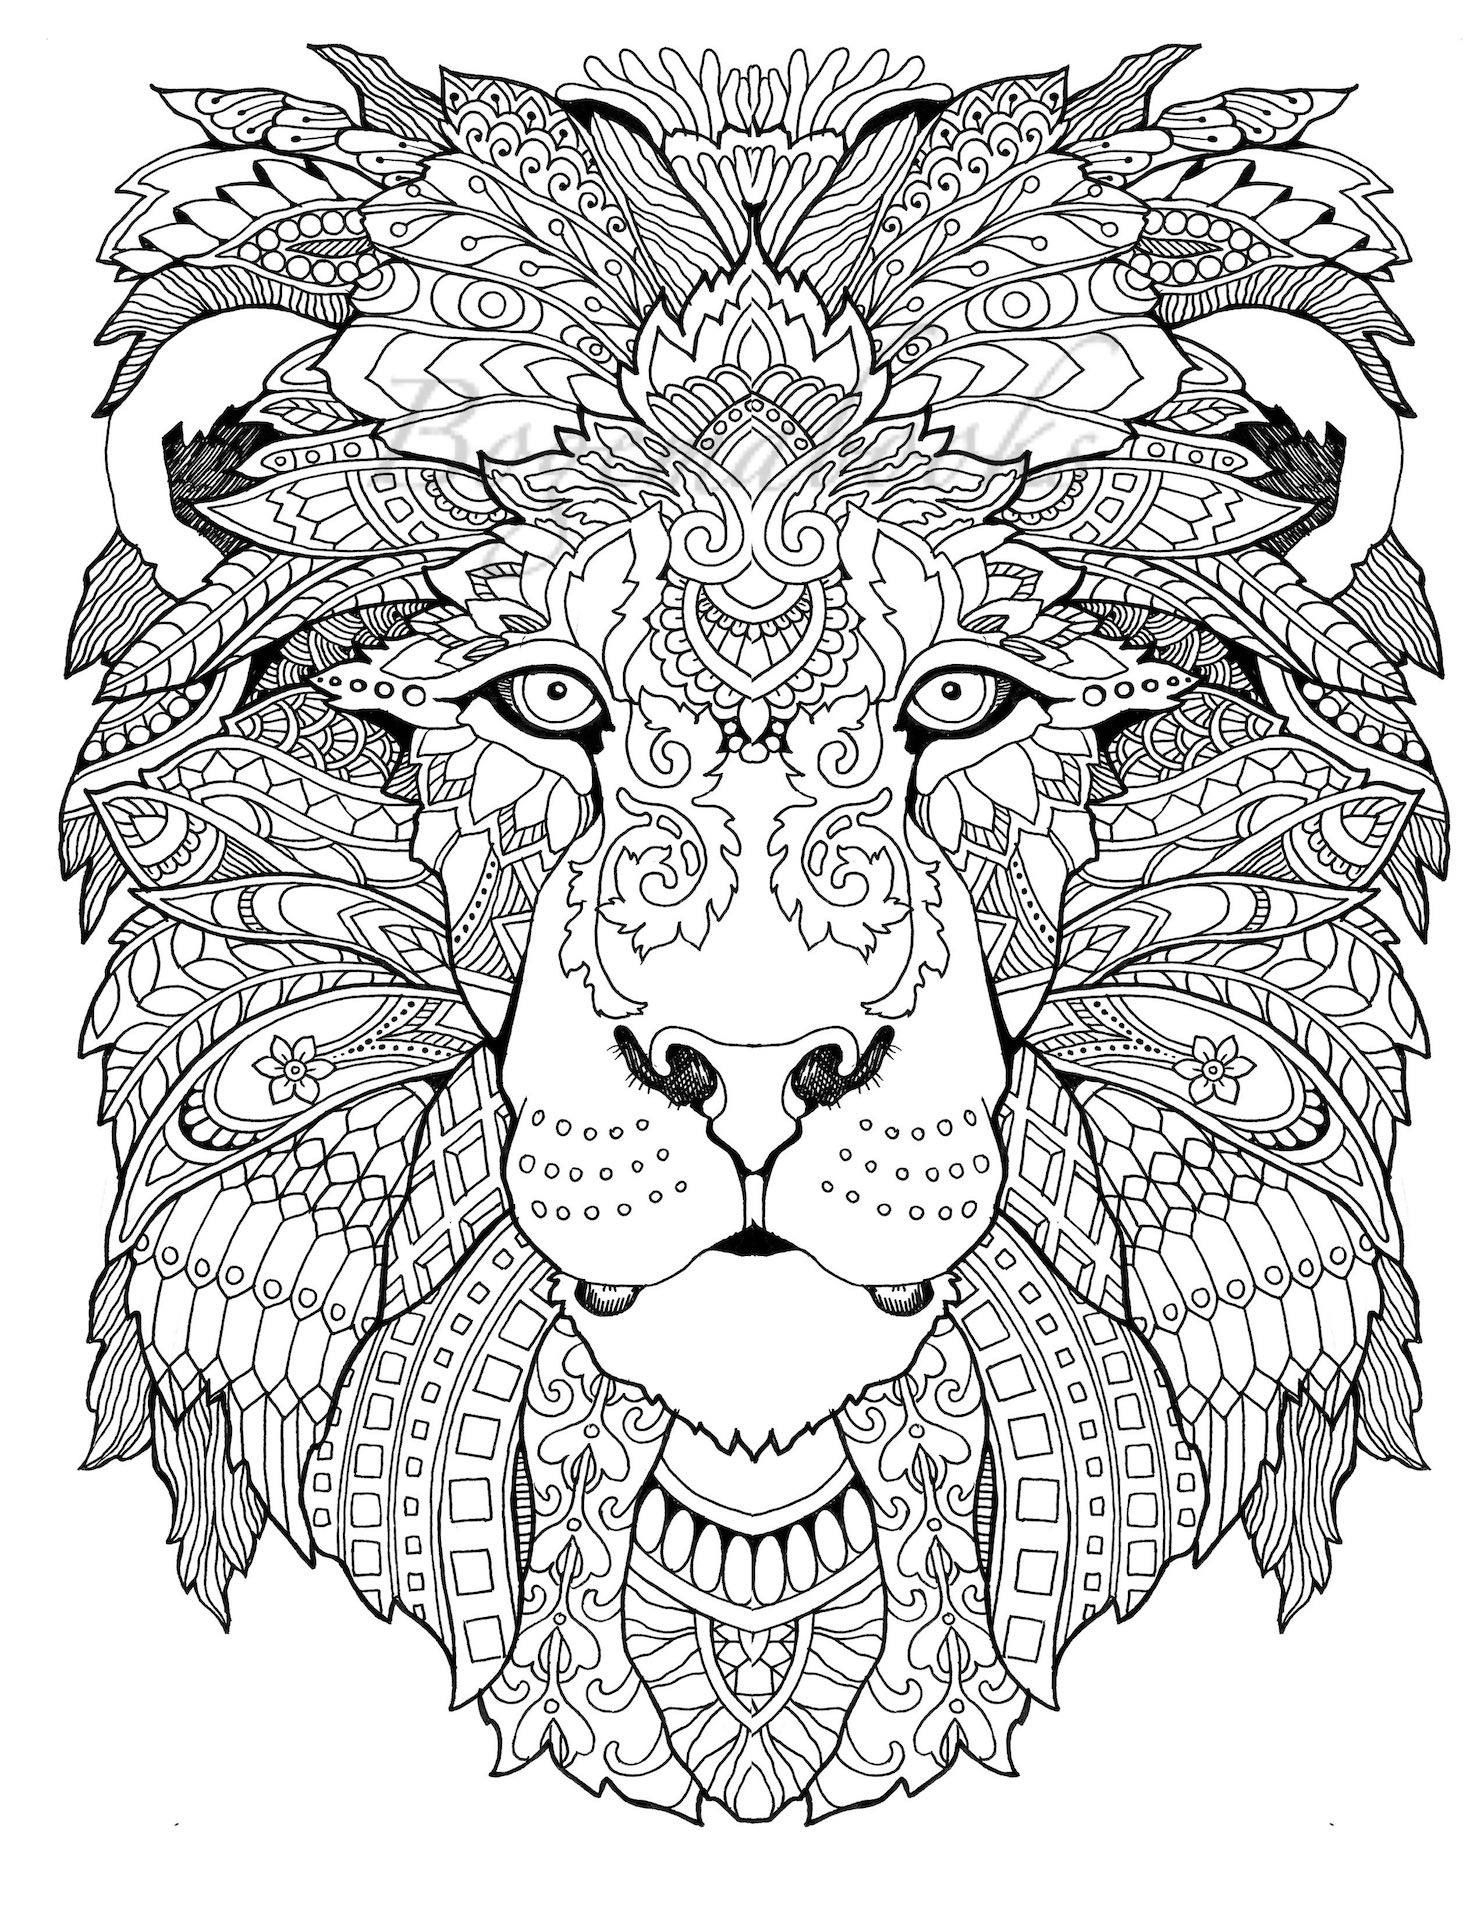 Awesome Animals Adult Coloring Book Coloring Pages Pdf   Awesome - Free Printable Coloring Book Pages For Adults